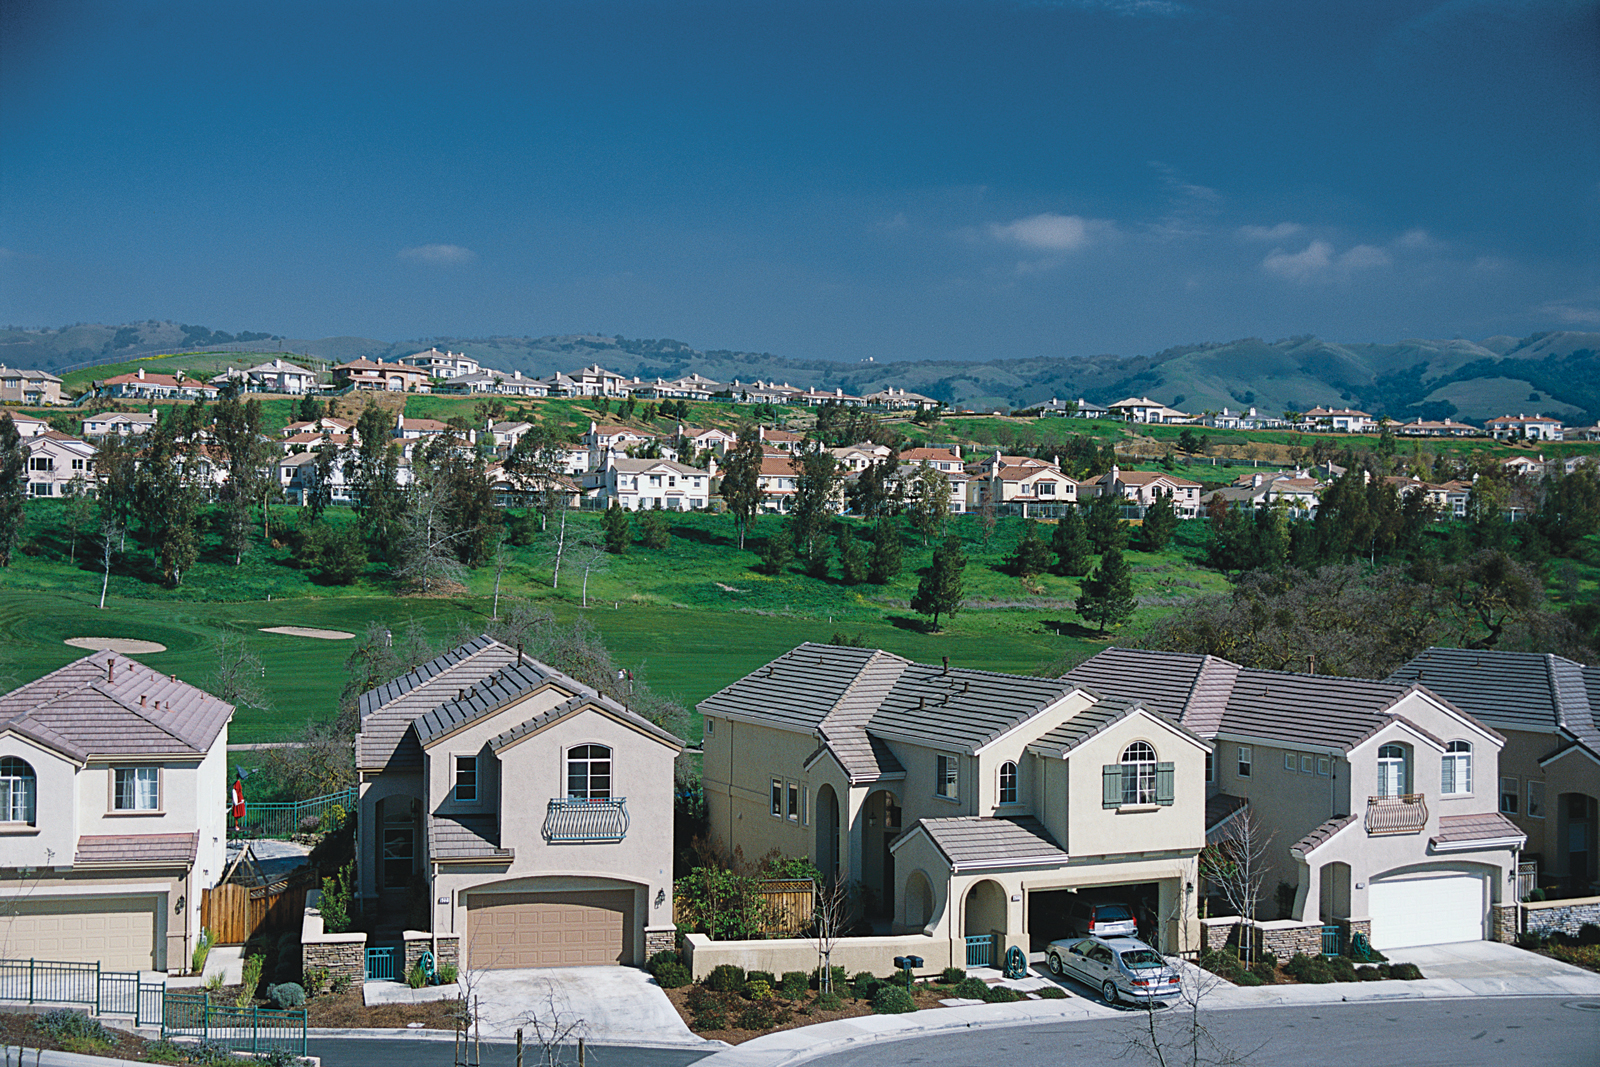 Home developments built around golf courses are often designed as insular sites that disregard the opportunities for social interaction presented by community oriented landscape architecture.